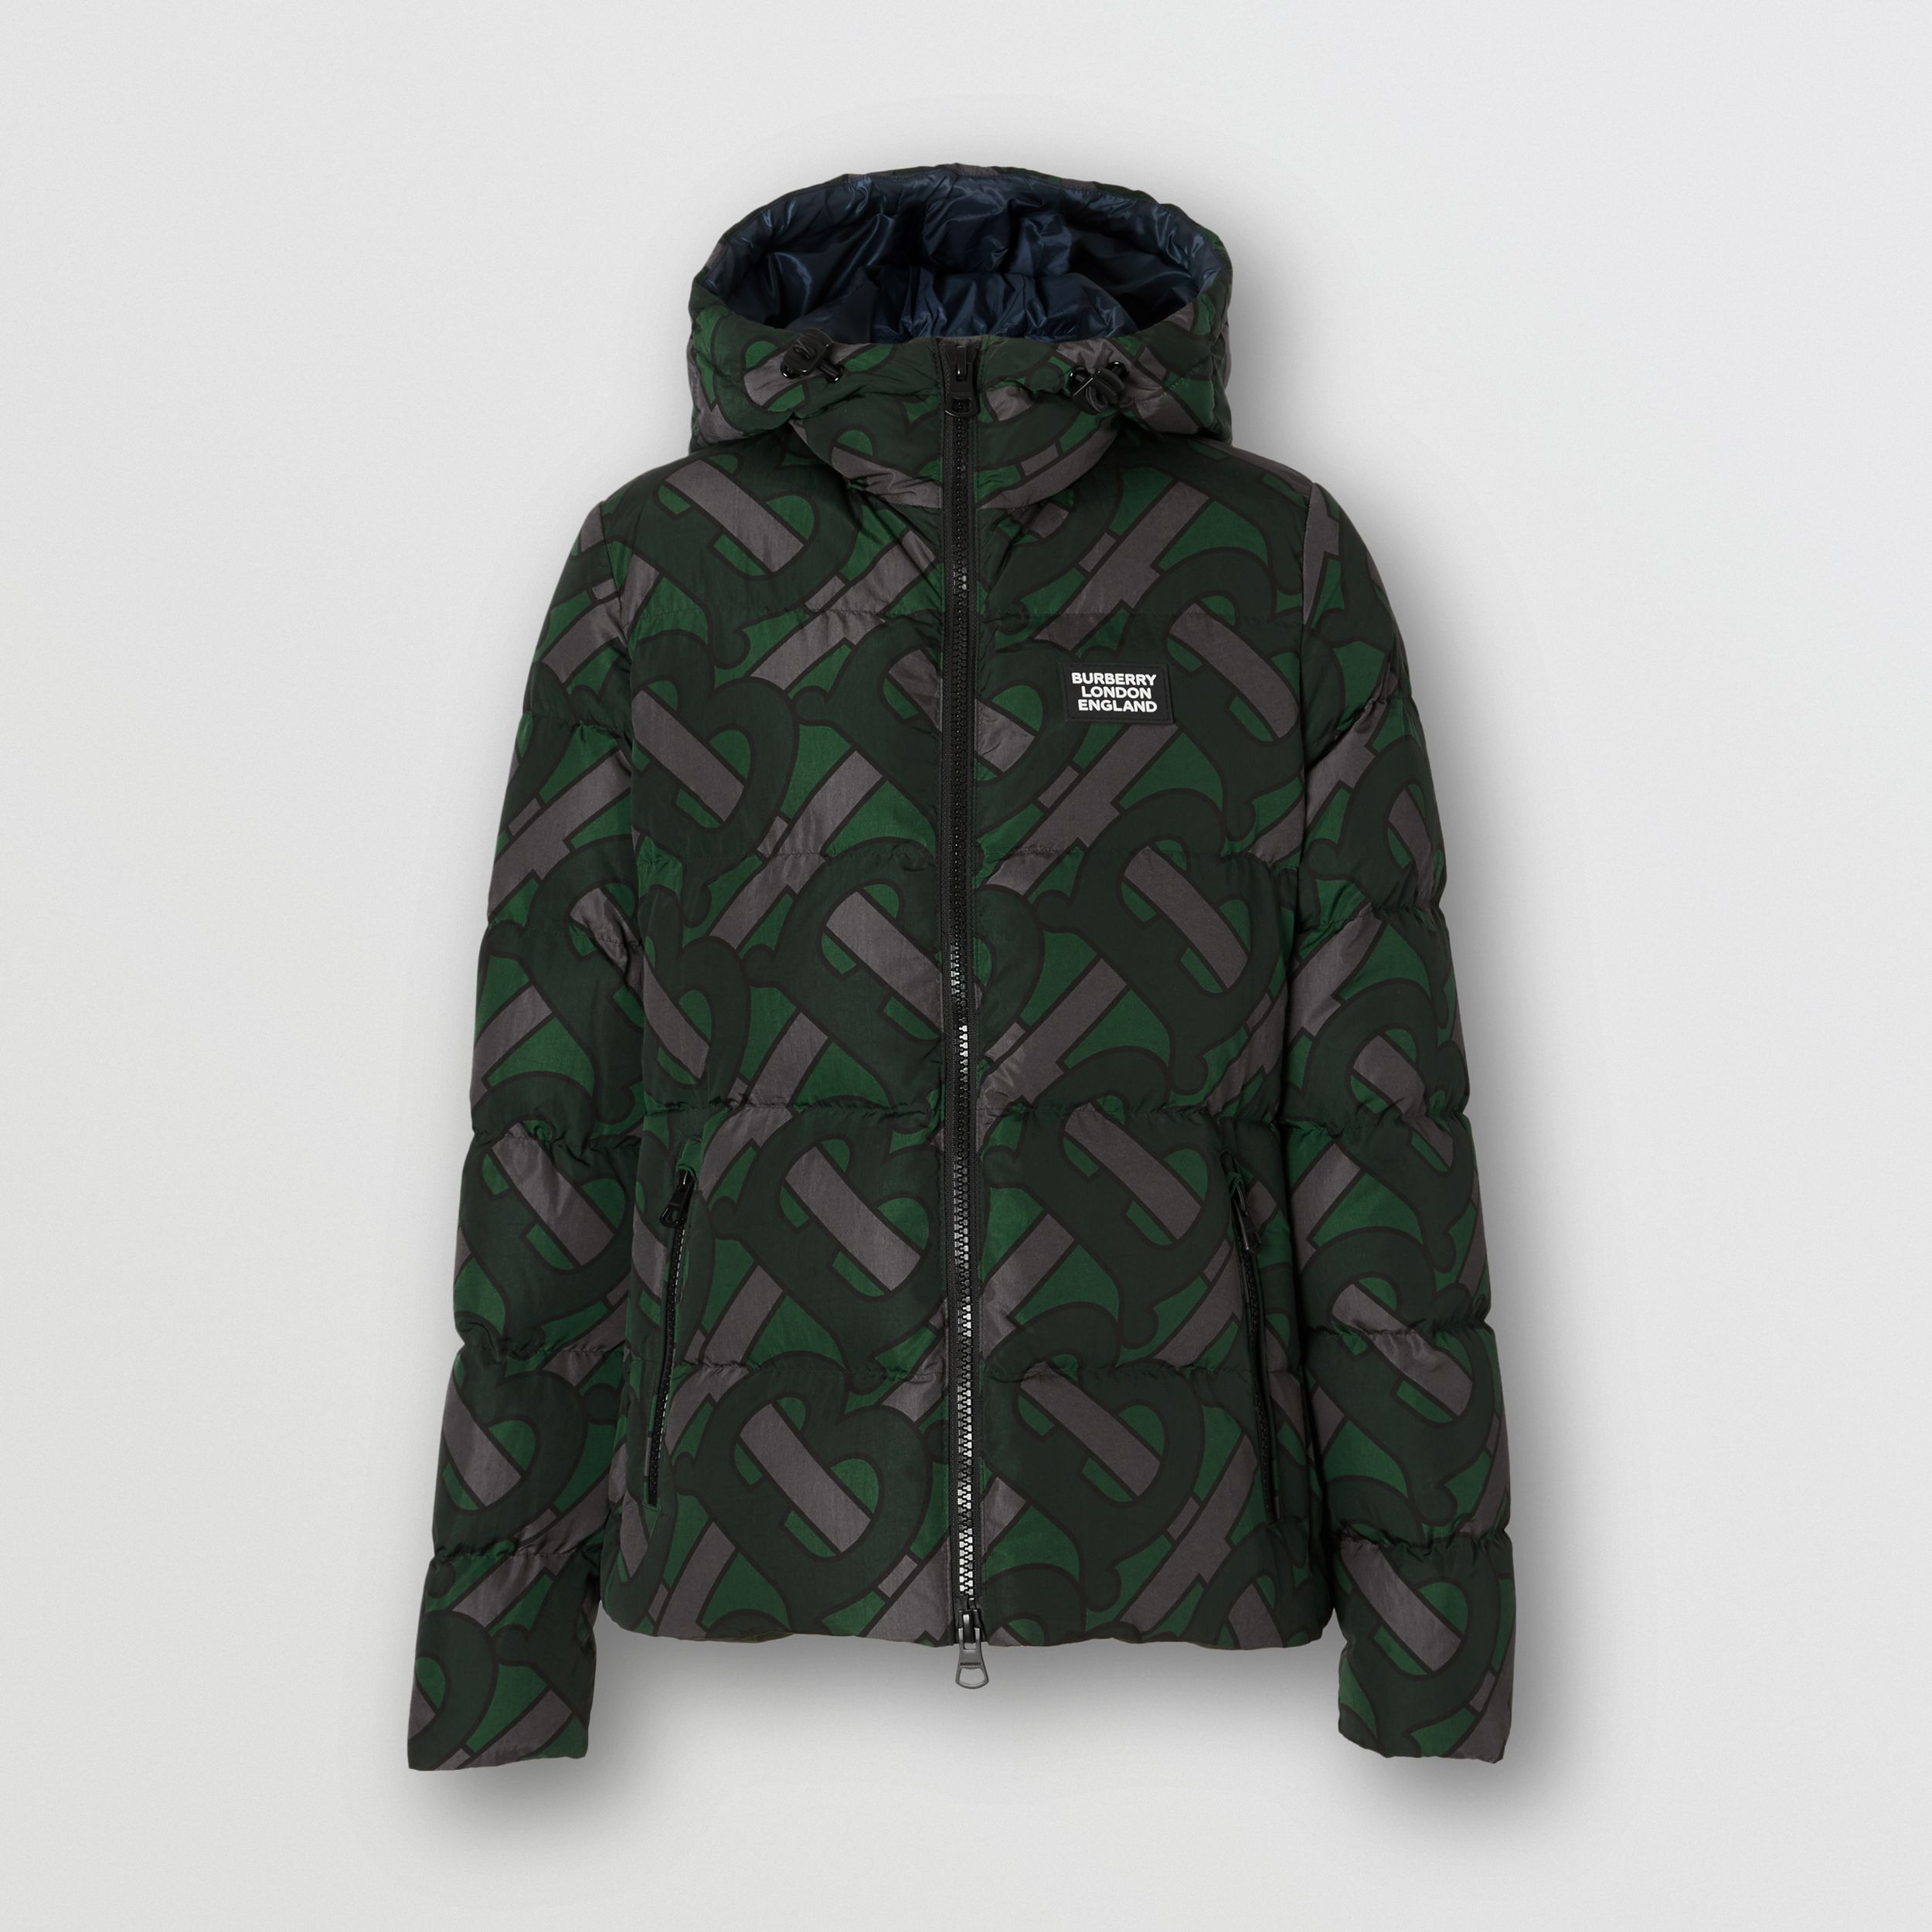 Monogram Print Hooded Puffer Jacket in Forest Green - Women | Burberry United Kingdom - 1